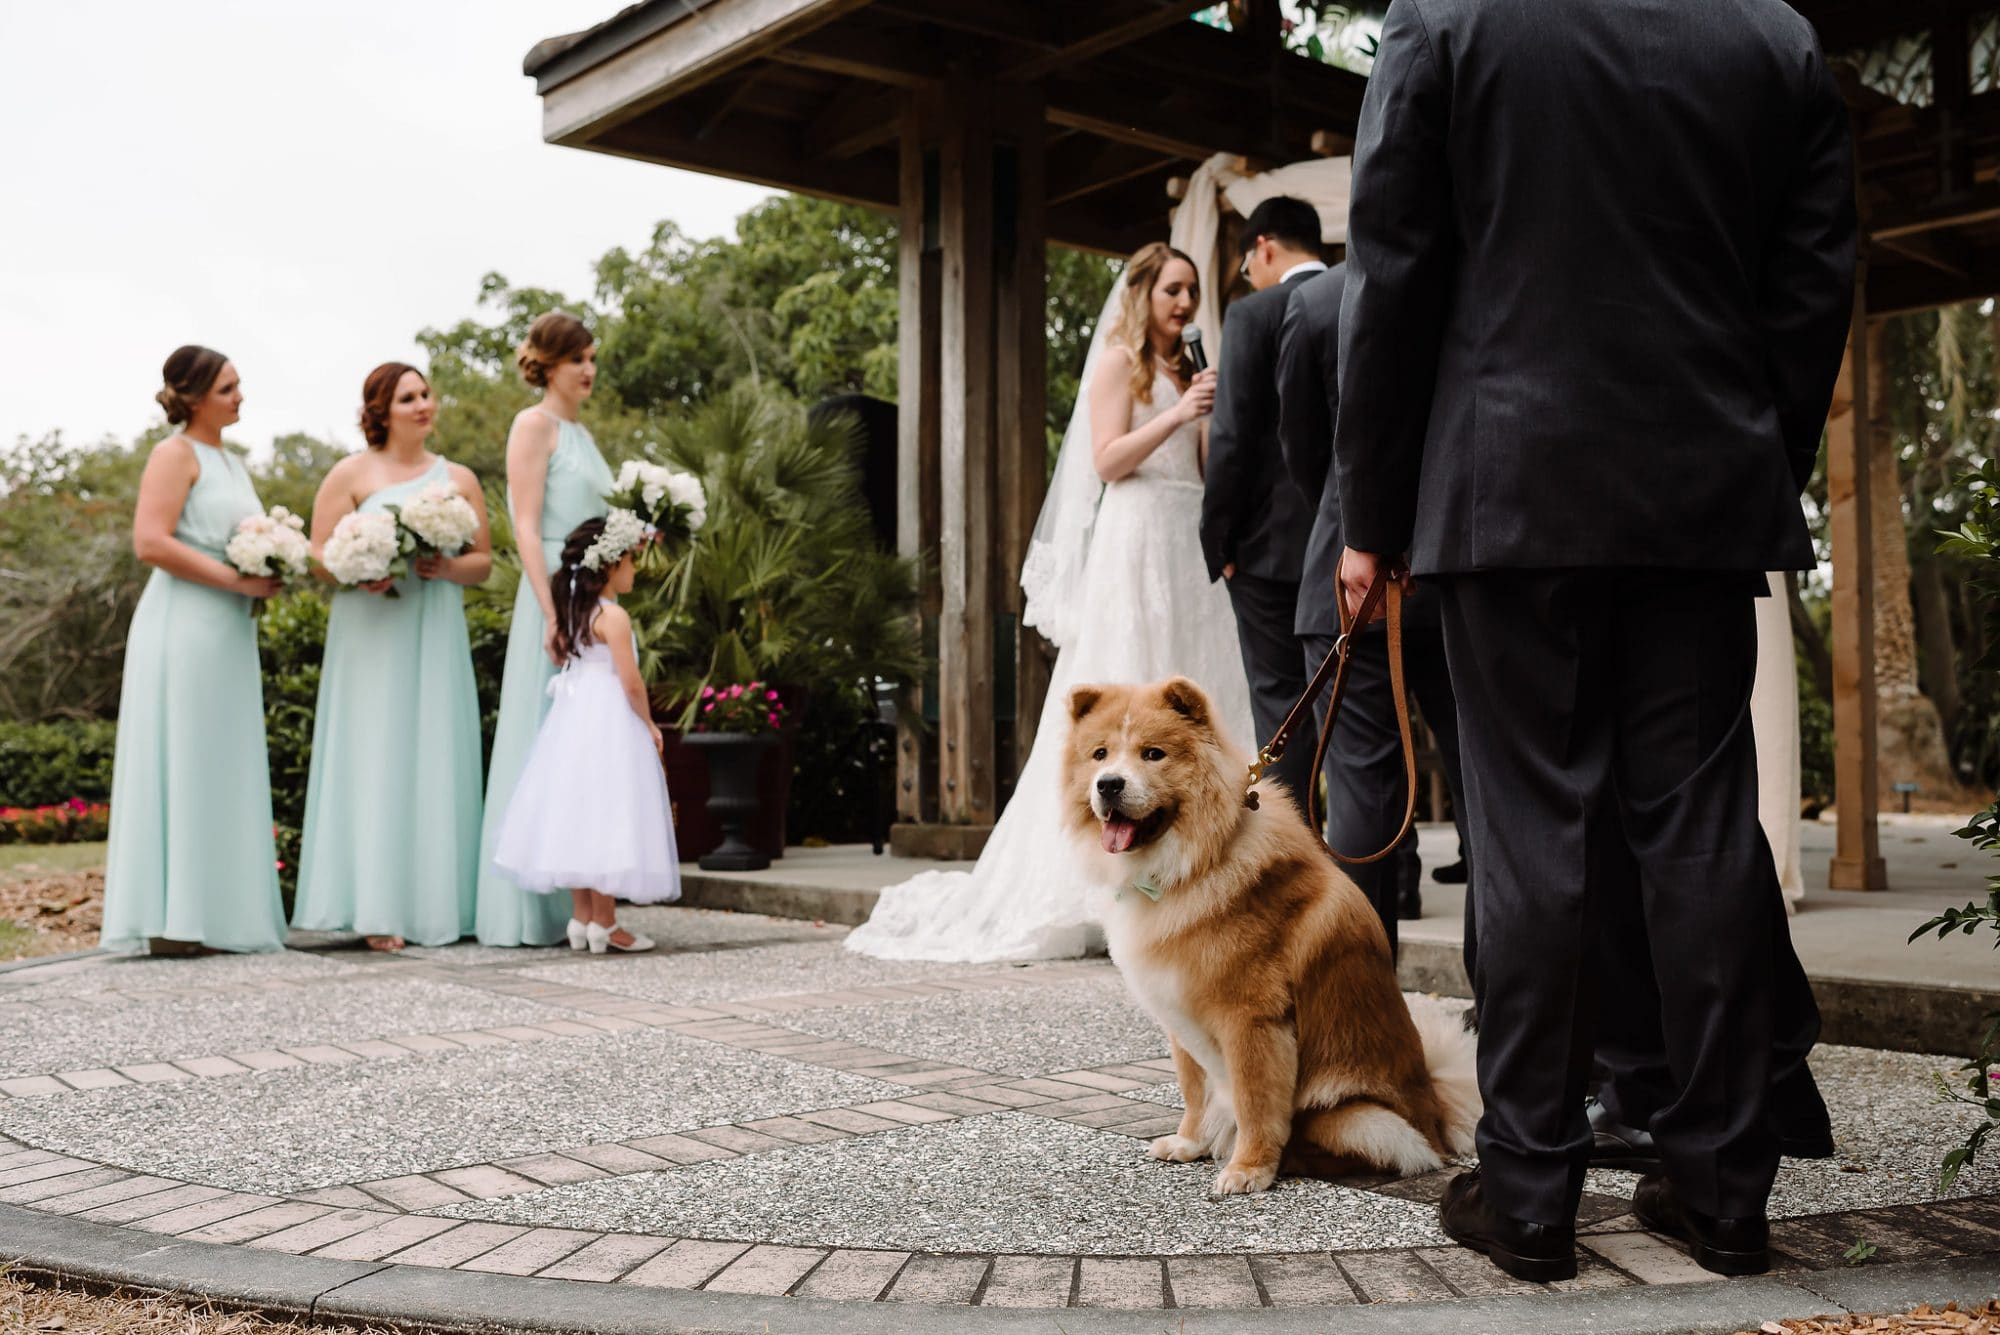 Chow dog on leash during ceremony